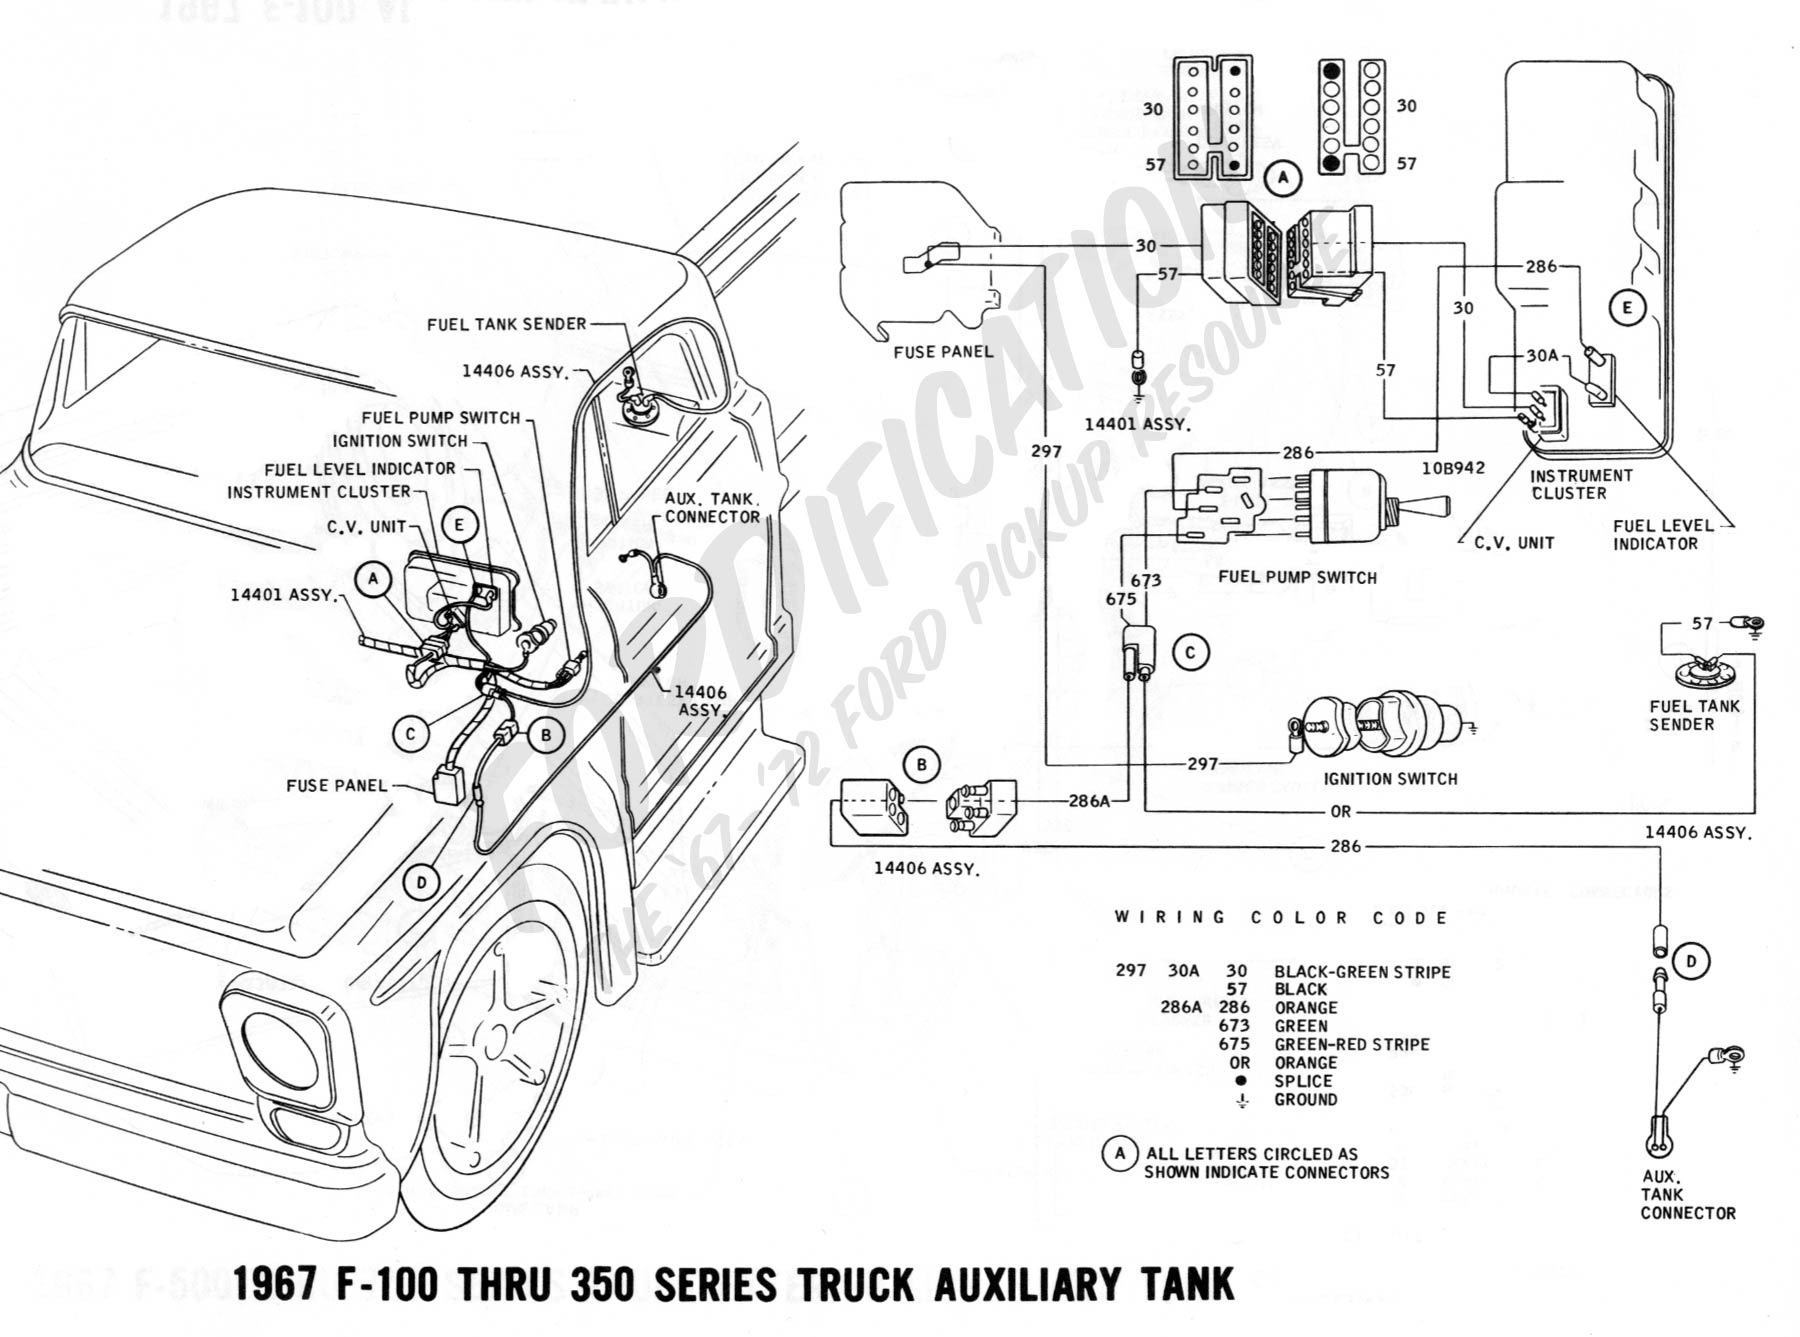 Wiring Diagram 73 Ford Pickup Library 1977 Maverick Best For Truck Enthusiasts Forums 1967 F 100 Thru 350 Auxiliary Fuel Tank